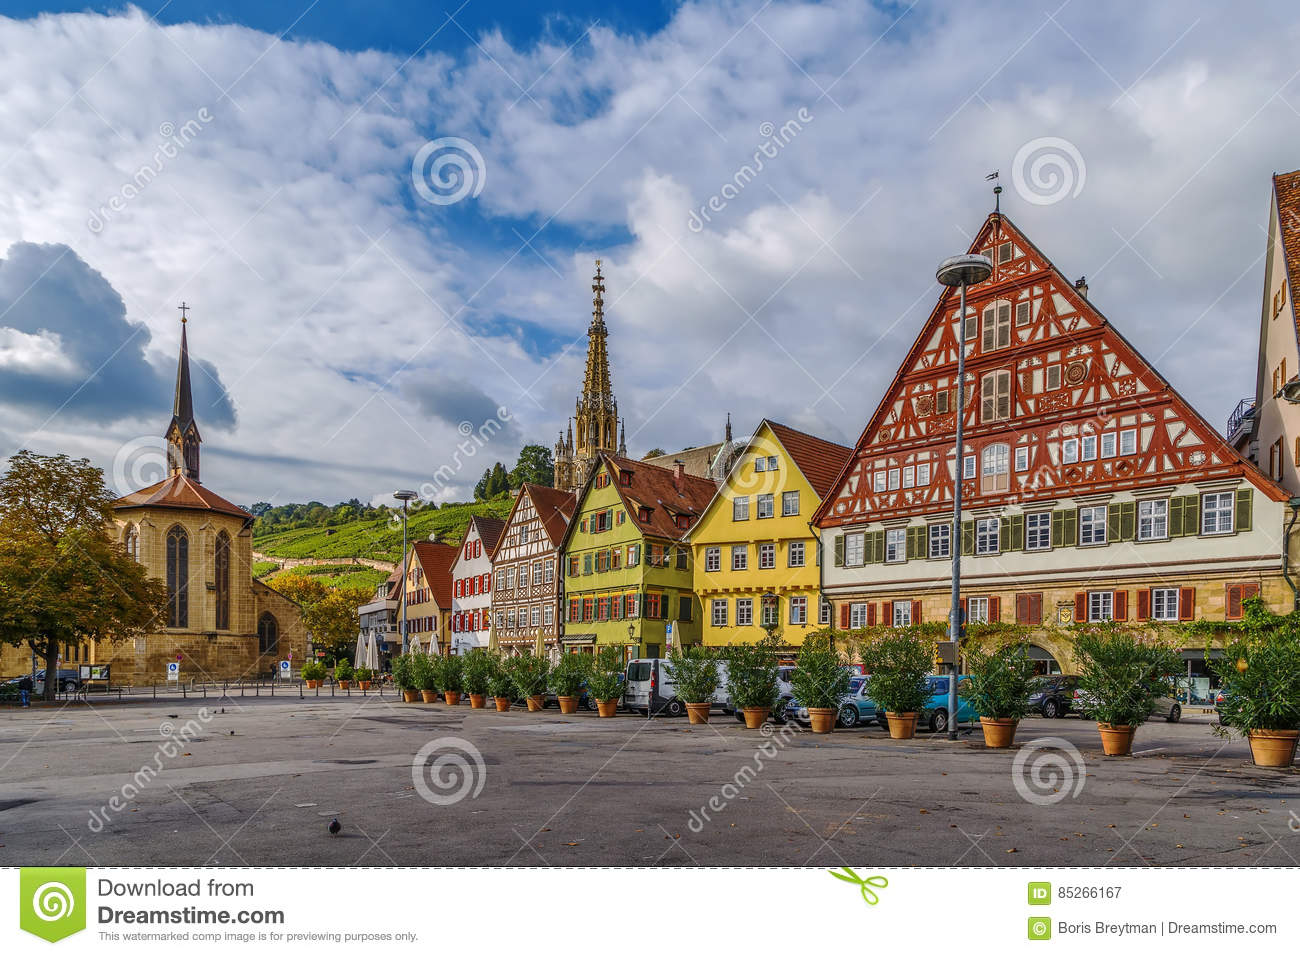 marktplatz quadrieren esslingen morgens neckar deutschland stockbild bild von historisch. Black Bedroom Furniture Sets. Home Design Ideas